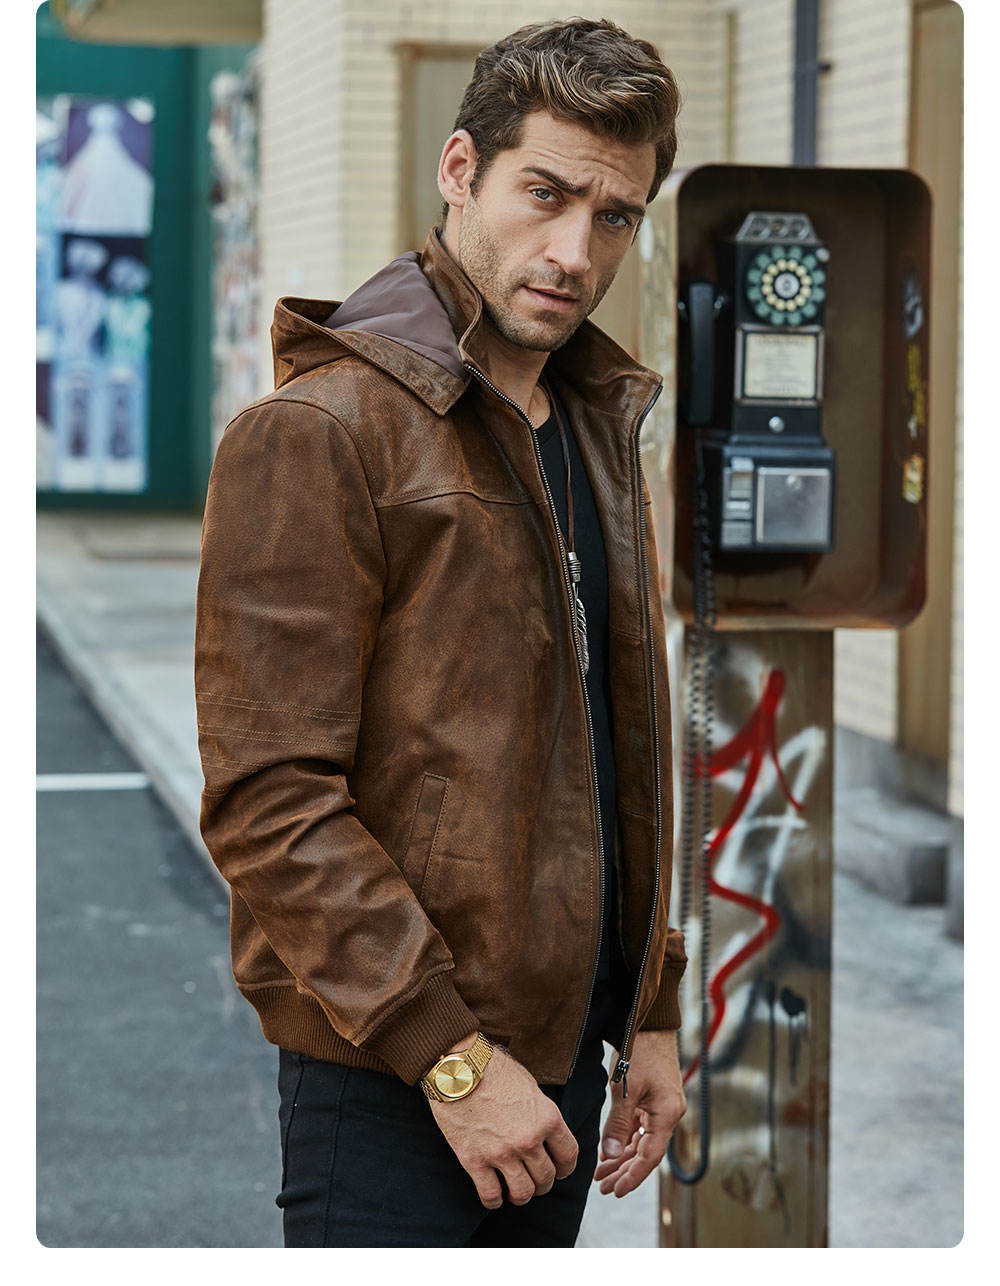 H7531fe905f934635ab705bf6403bdcc9y New Men's Winter Jacket Made Of Genuine Pigskin Leather With A Hood, Pigskin Motorcycle Jacket, Natural Leather Jacket